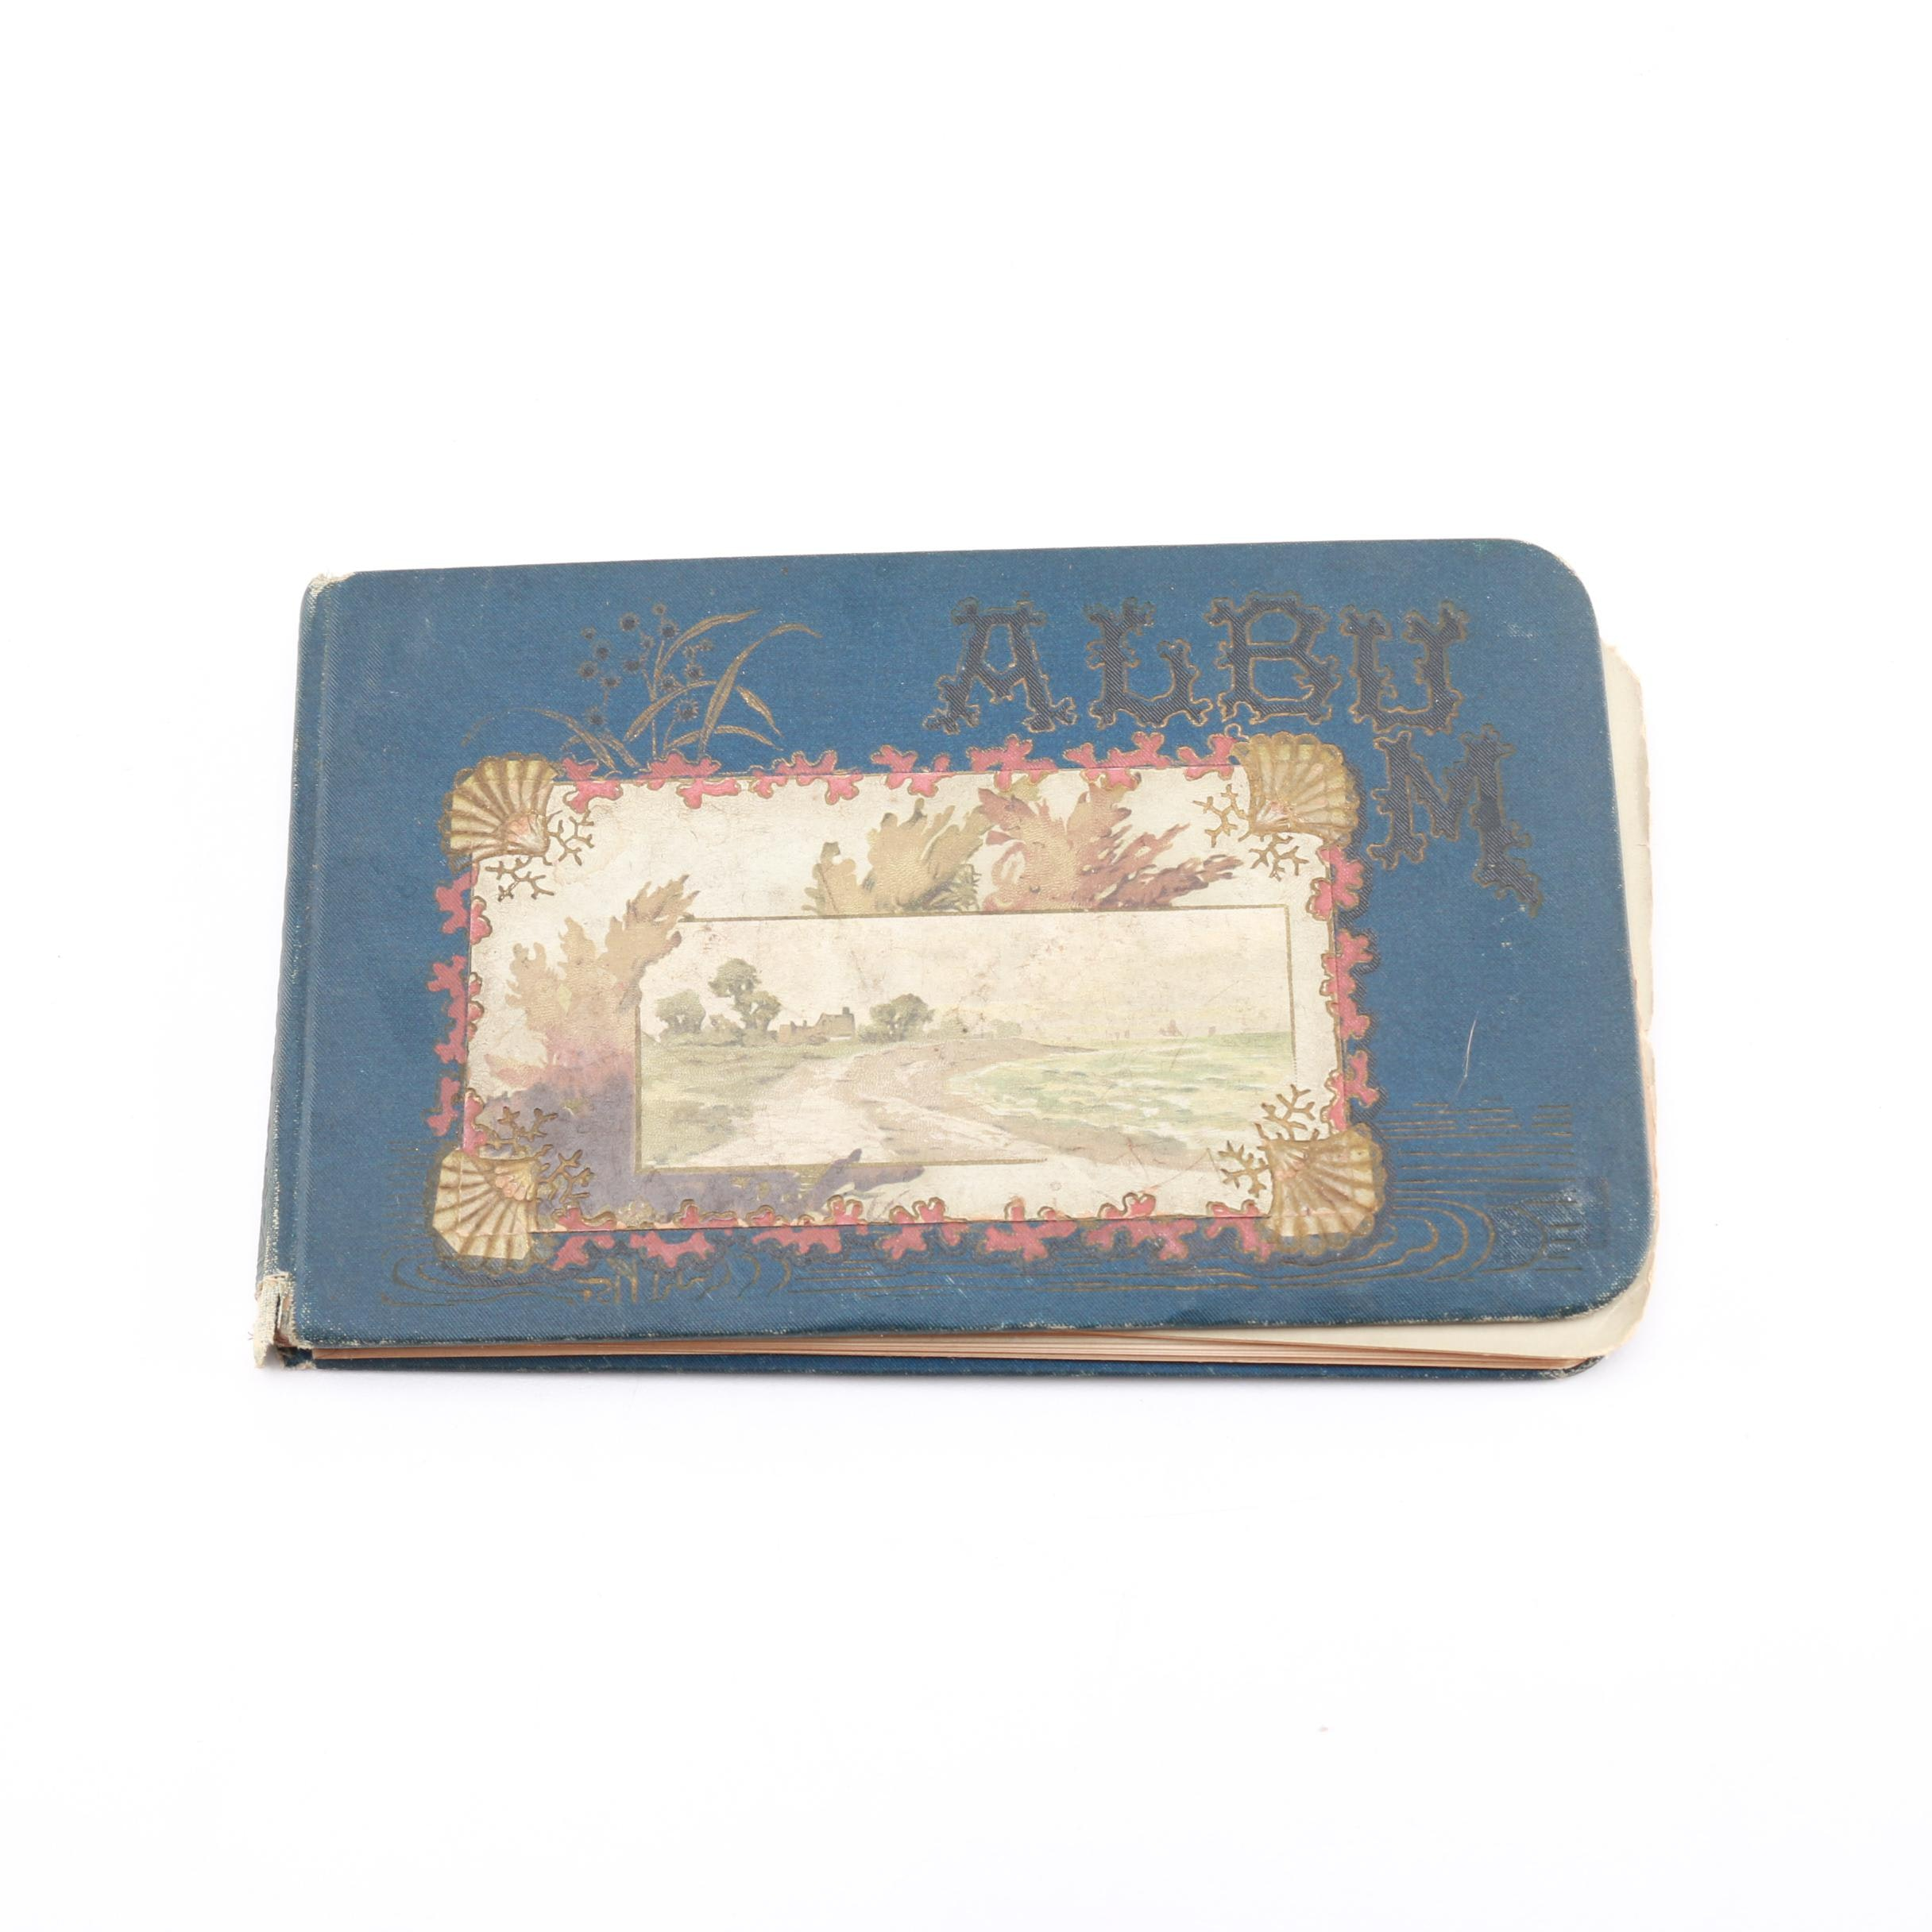 Victorian-Era Autograph Album With Personal Notes and Chromolithograph Prints